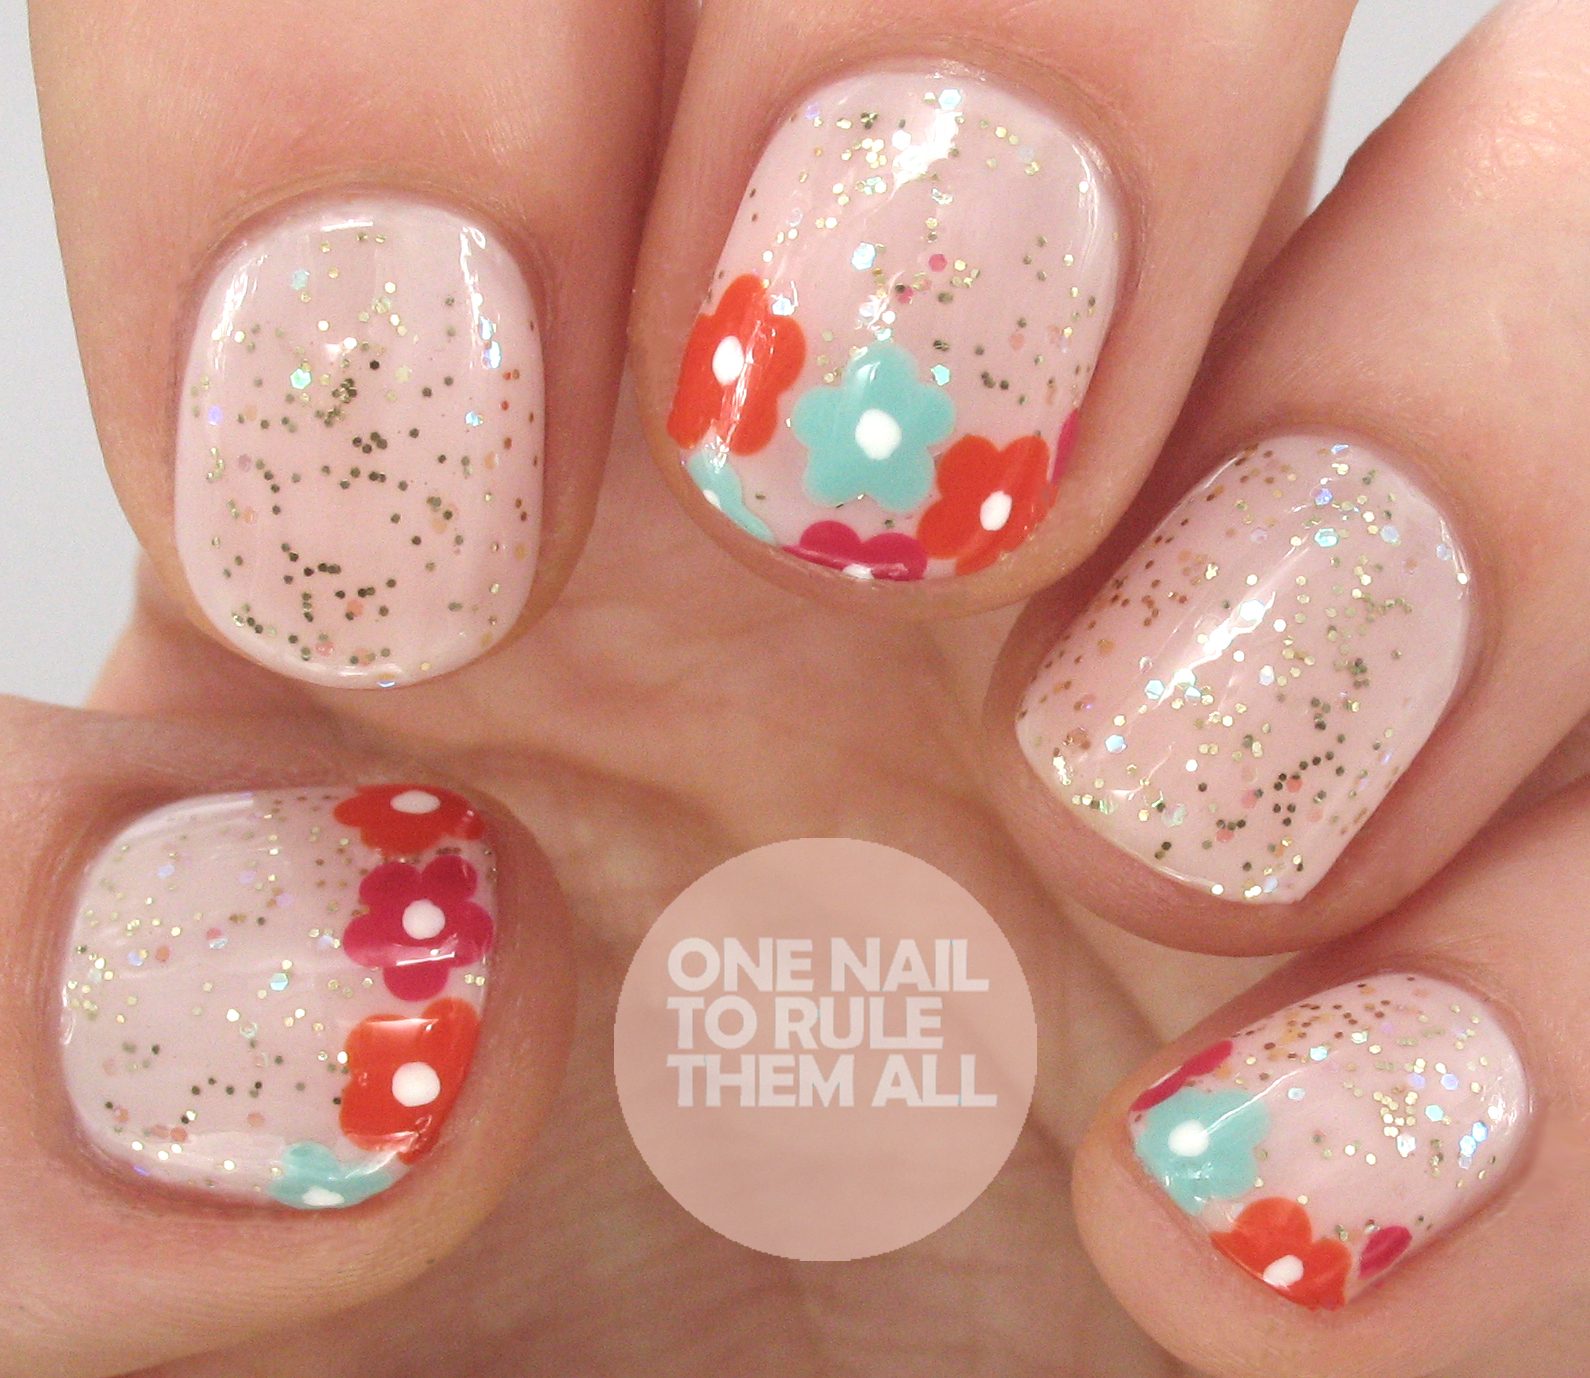 Vente Privee Art One Nail To Rule Them All Ciate X Vente Privee Sale Floral Nail Art